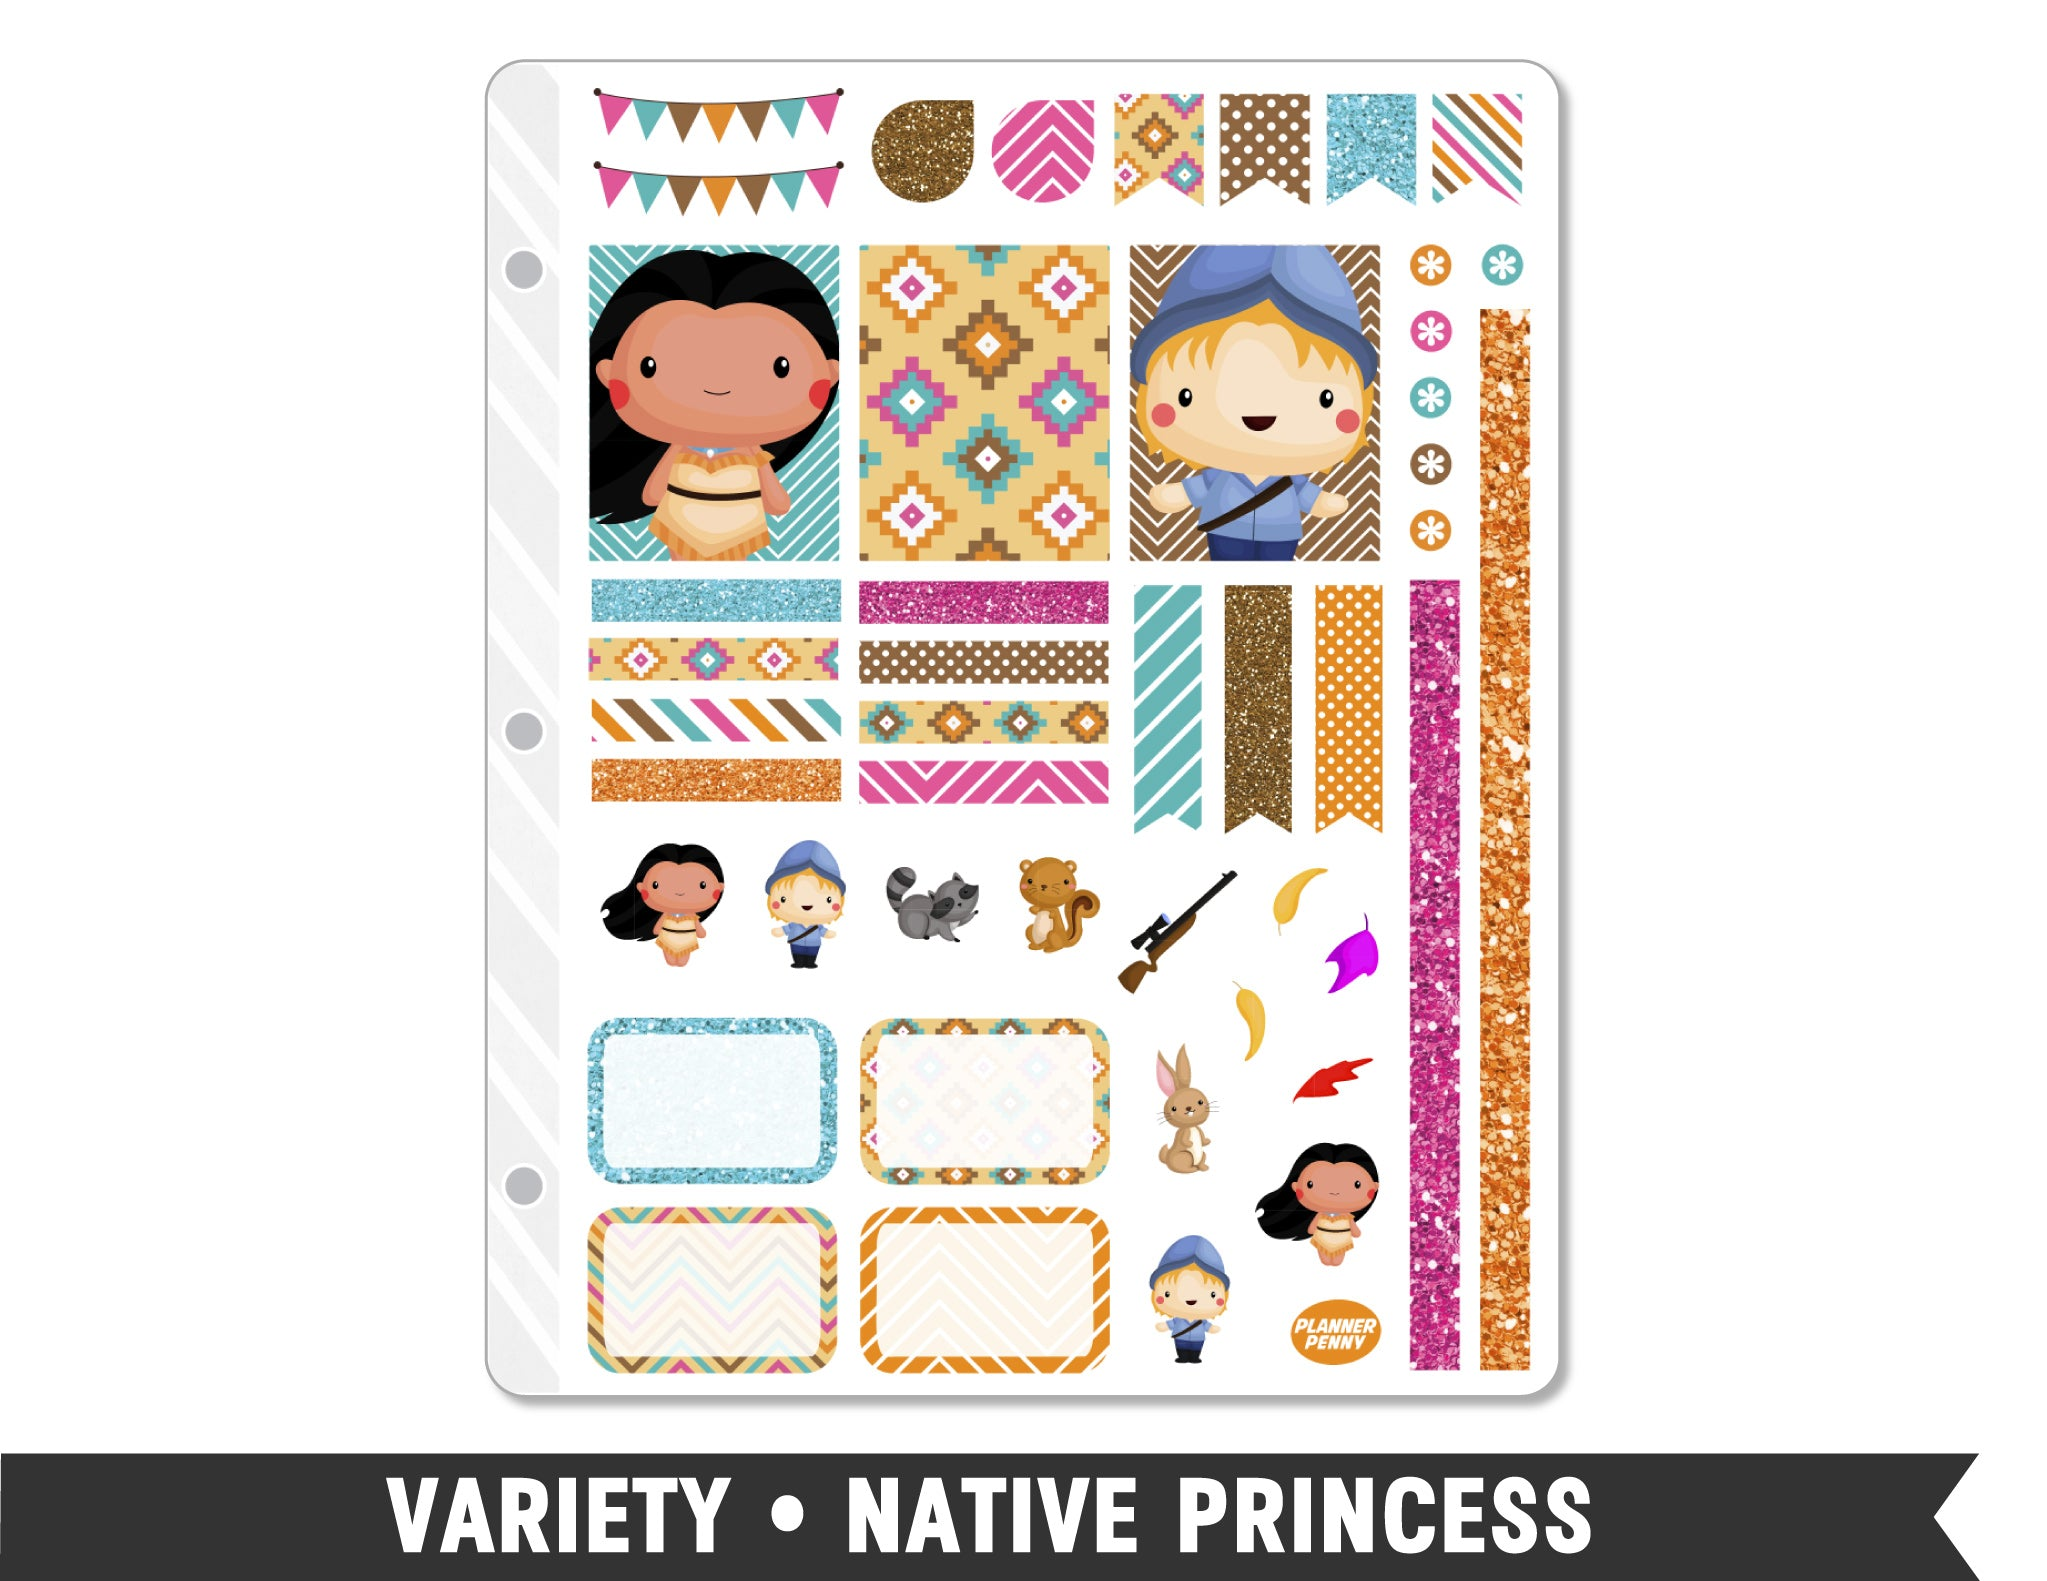 Variety • Native Princess Weekly Spread Planner Stickers